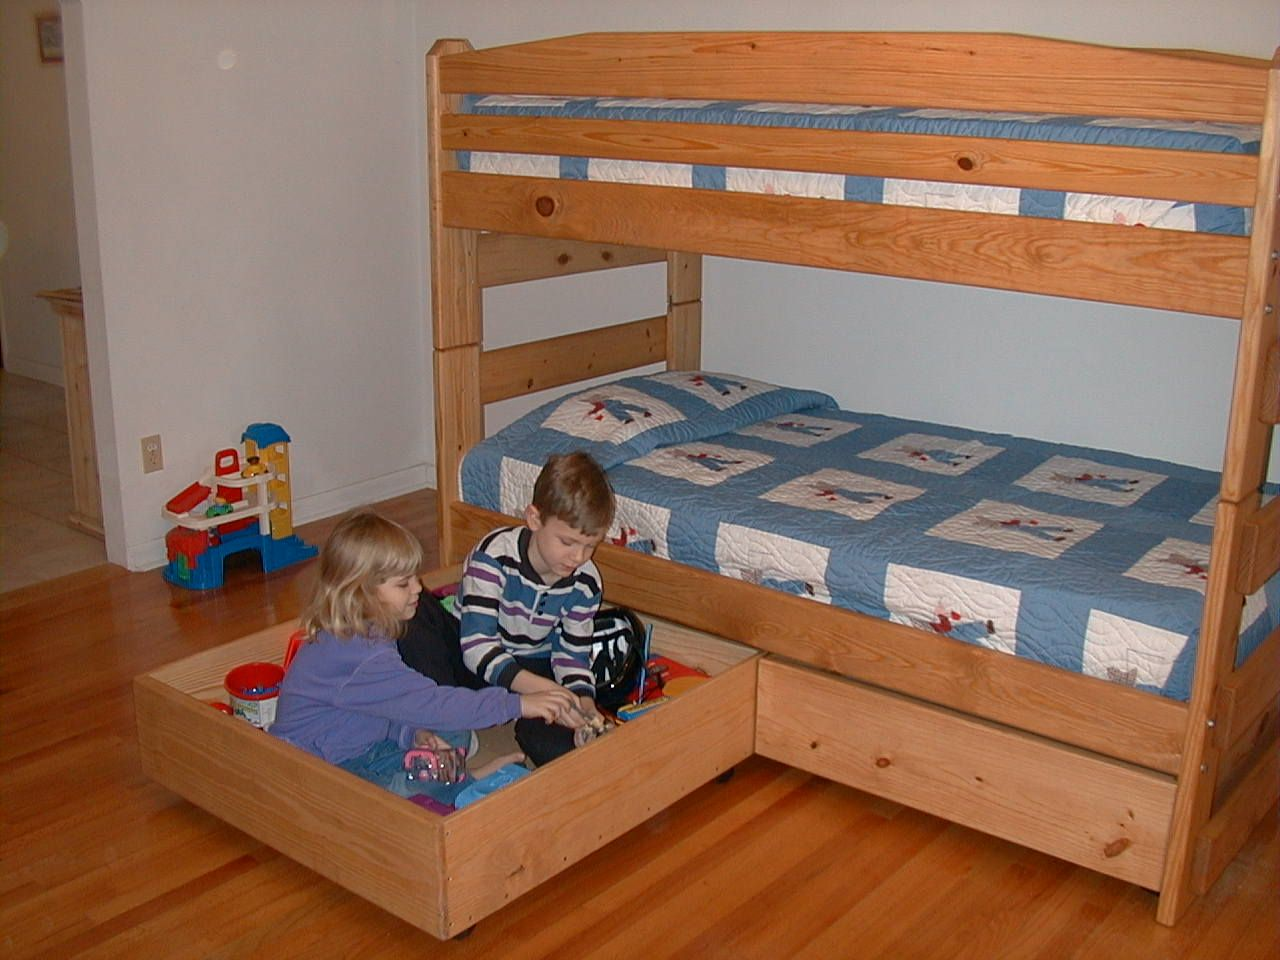 Bed frame storage ideas - Find This Pin And More On Under Bed Storage Ideas